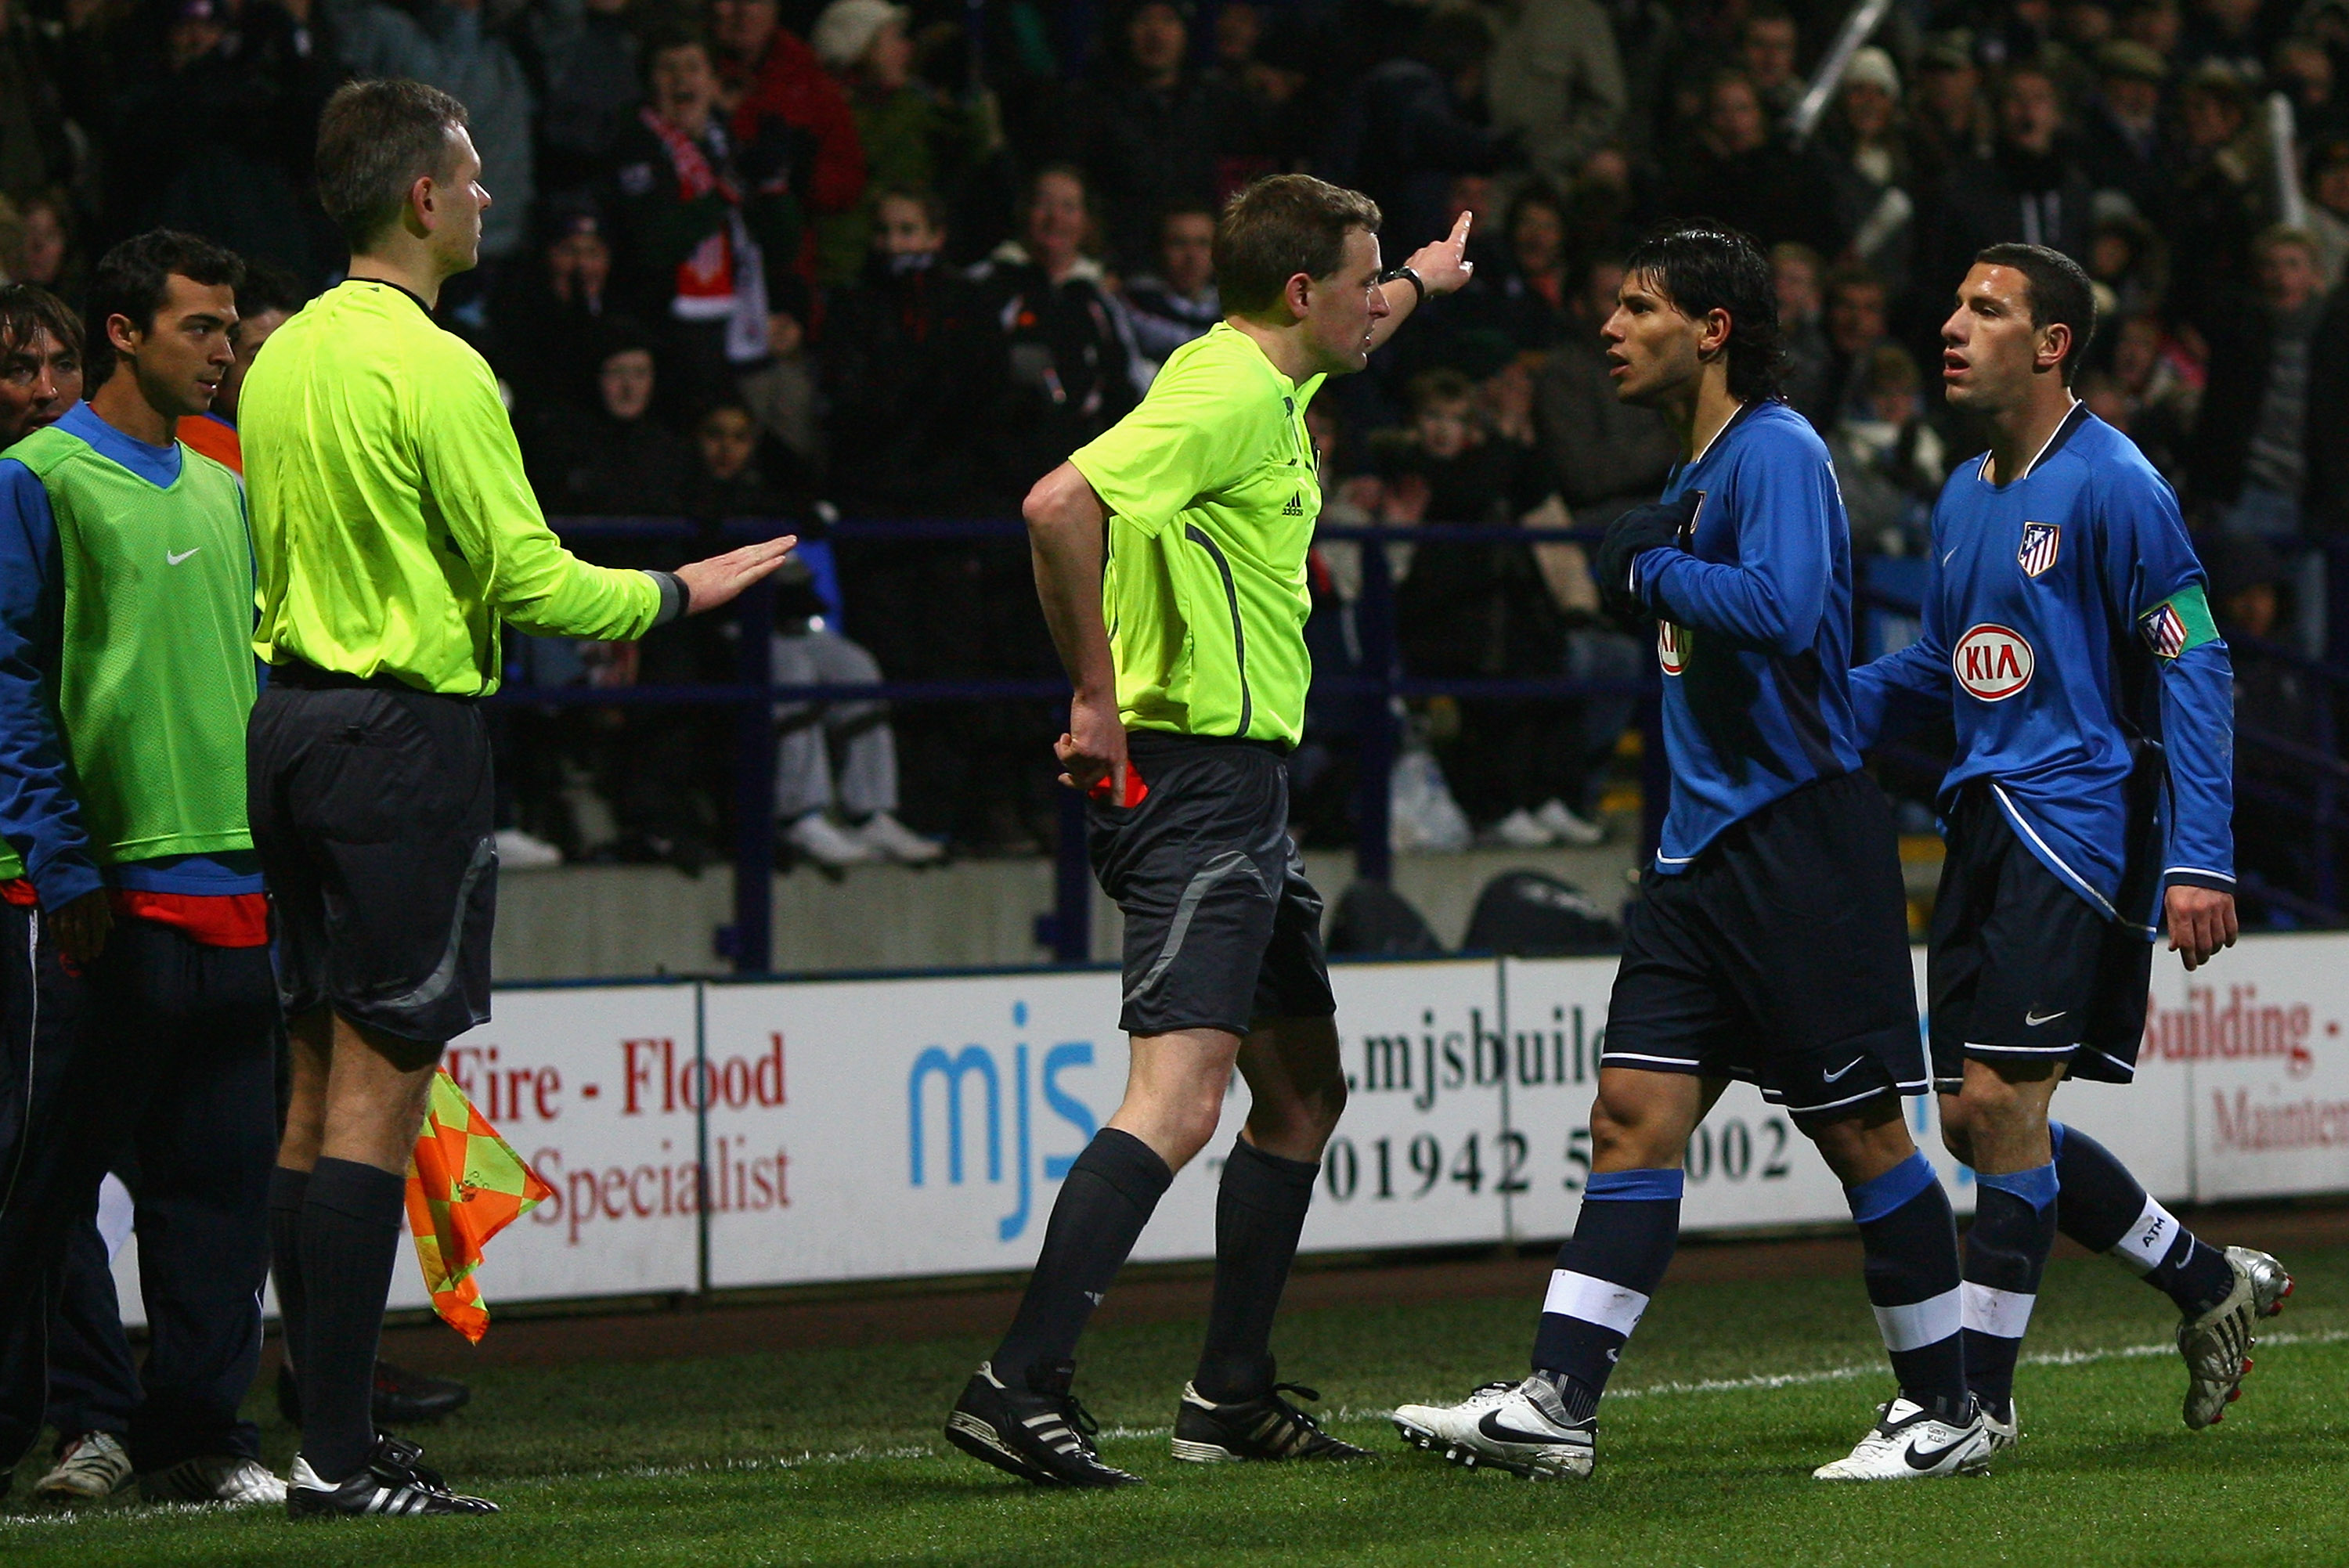 BOLTON, UNITED KINGDOM - FEBRUARY 14: Referee N Vollquartz shows a red card to Sergio Aguero of Atletico Madrid during the UEFA Cup Round of 32, First Leg match between Bolton Wanderers and Atletico Madrid at The Reebok Stadium on February 14, 2008 in Bol